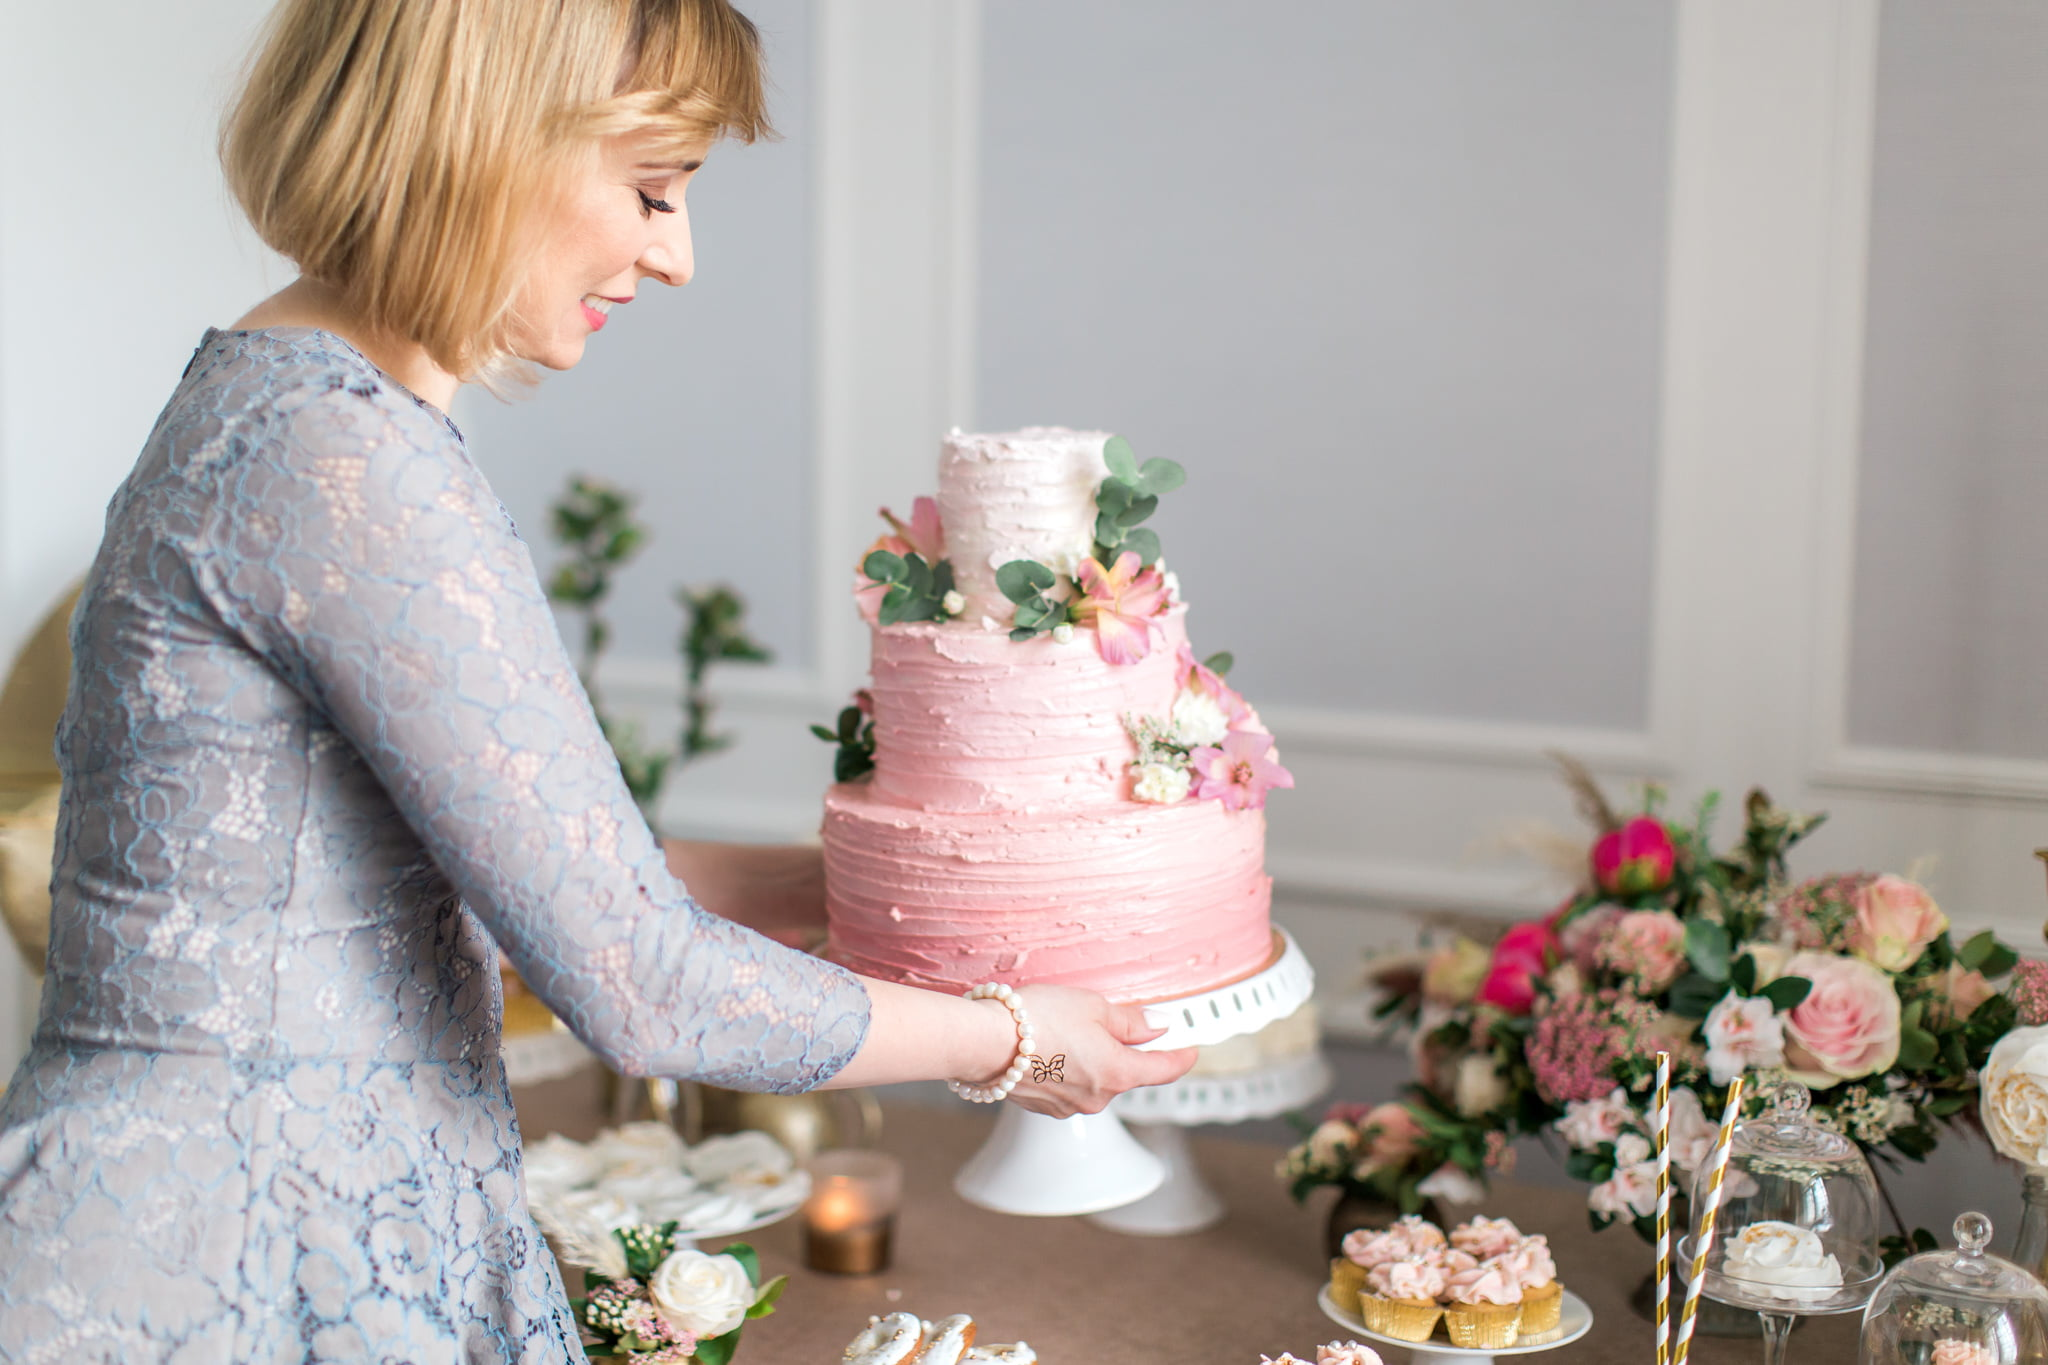 what features and predispositions of a wedding planner